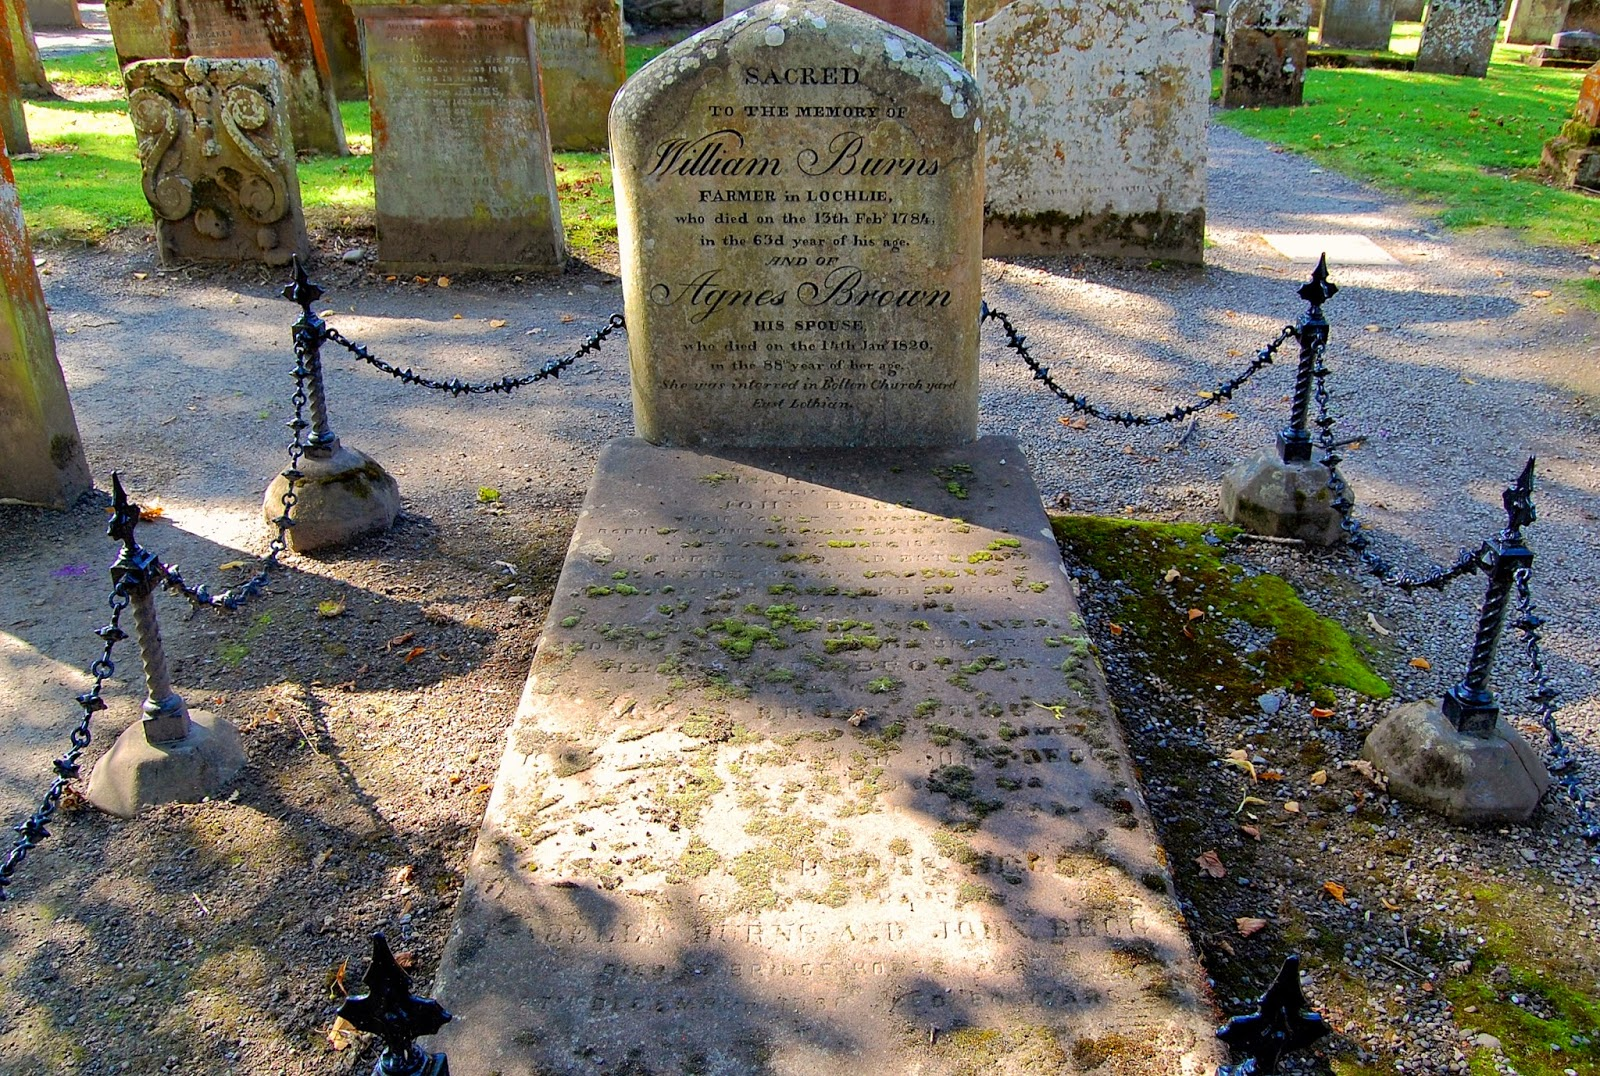 Burns' father's grave in auld Alloway kirk graveyard